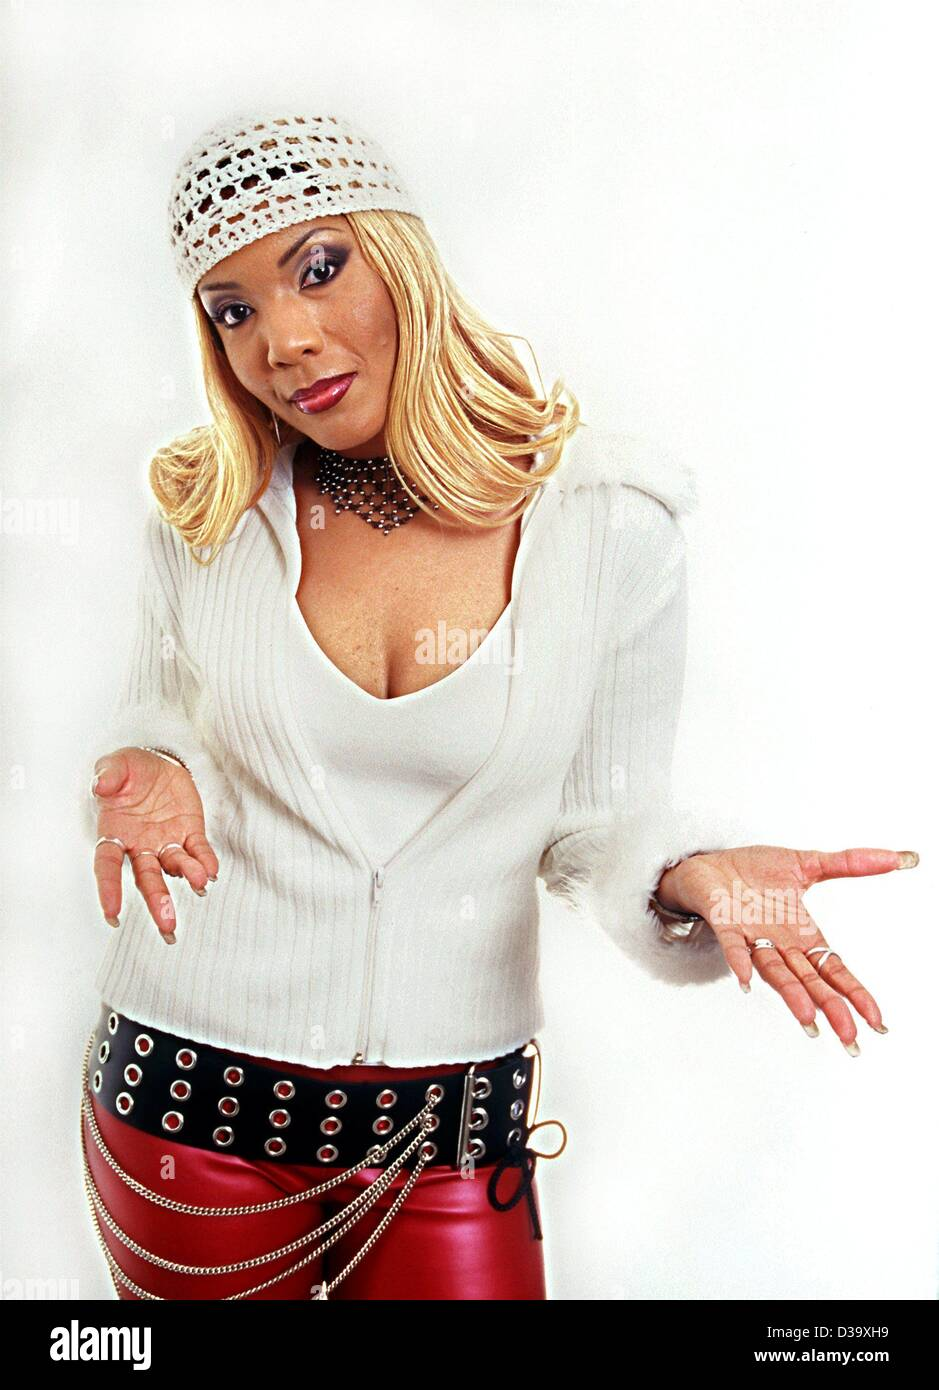 (dpa) - Melanie Thornton, international popstar (picture of 15.11. 2001), was killed in the crash of a Swiss Crossair - Stock Image